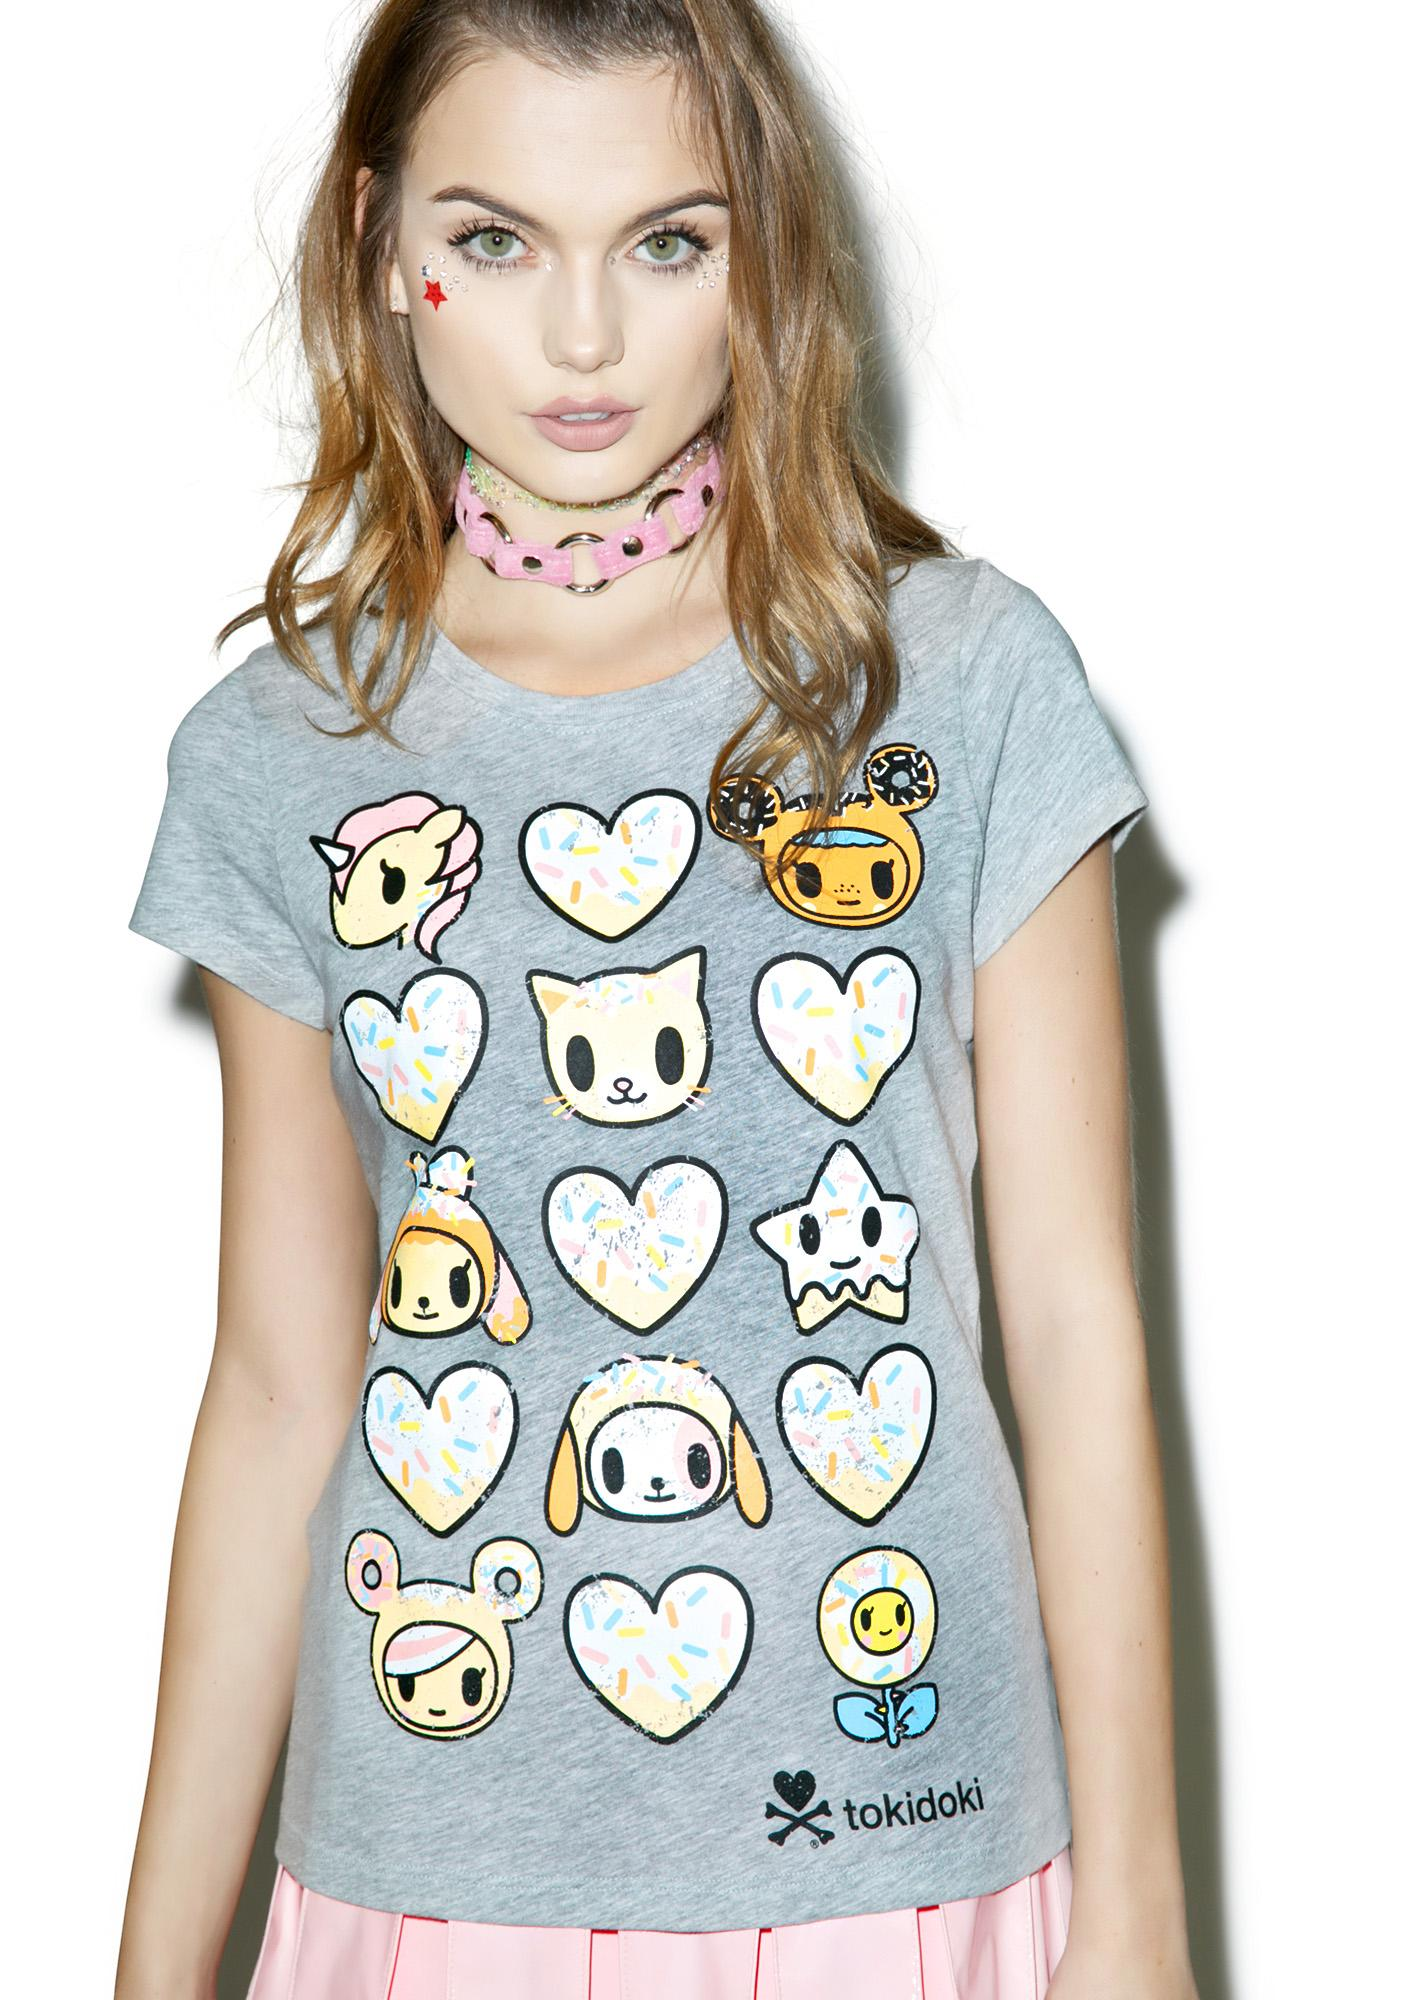 Tokidoki Heart You T-Shirt